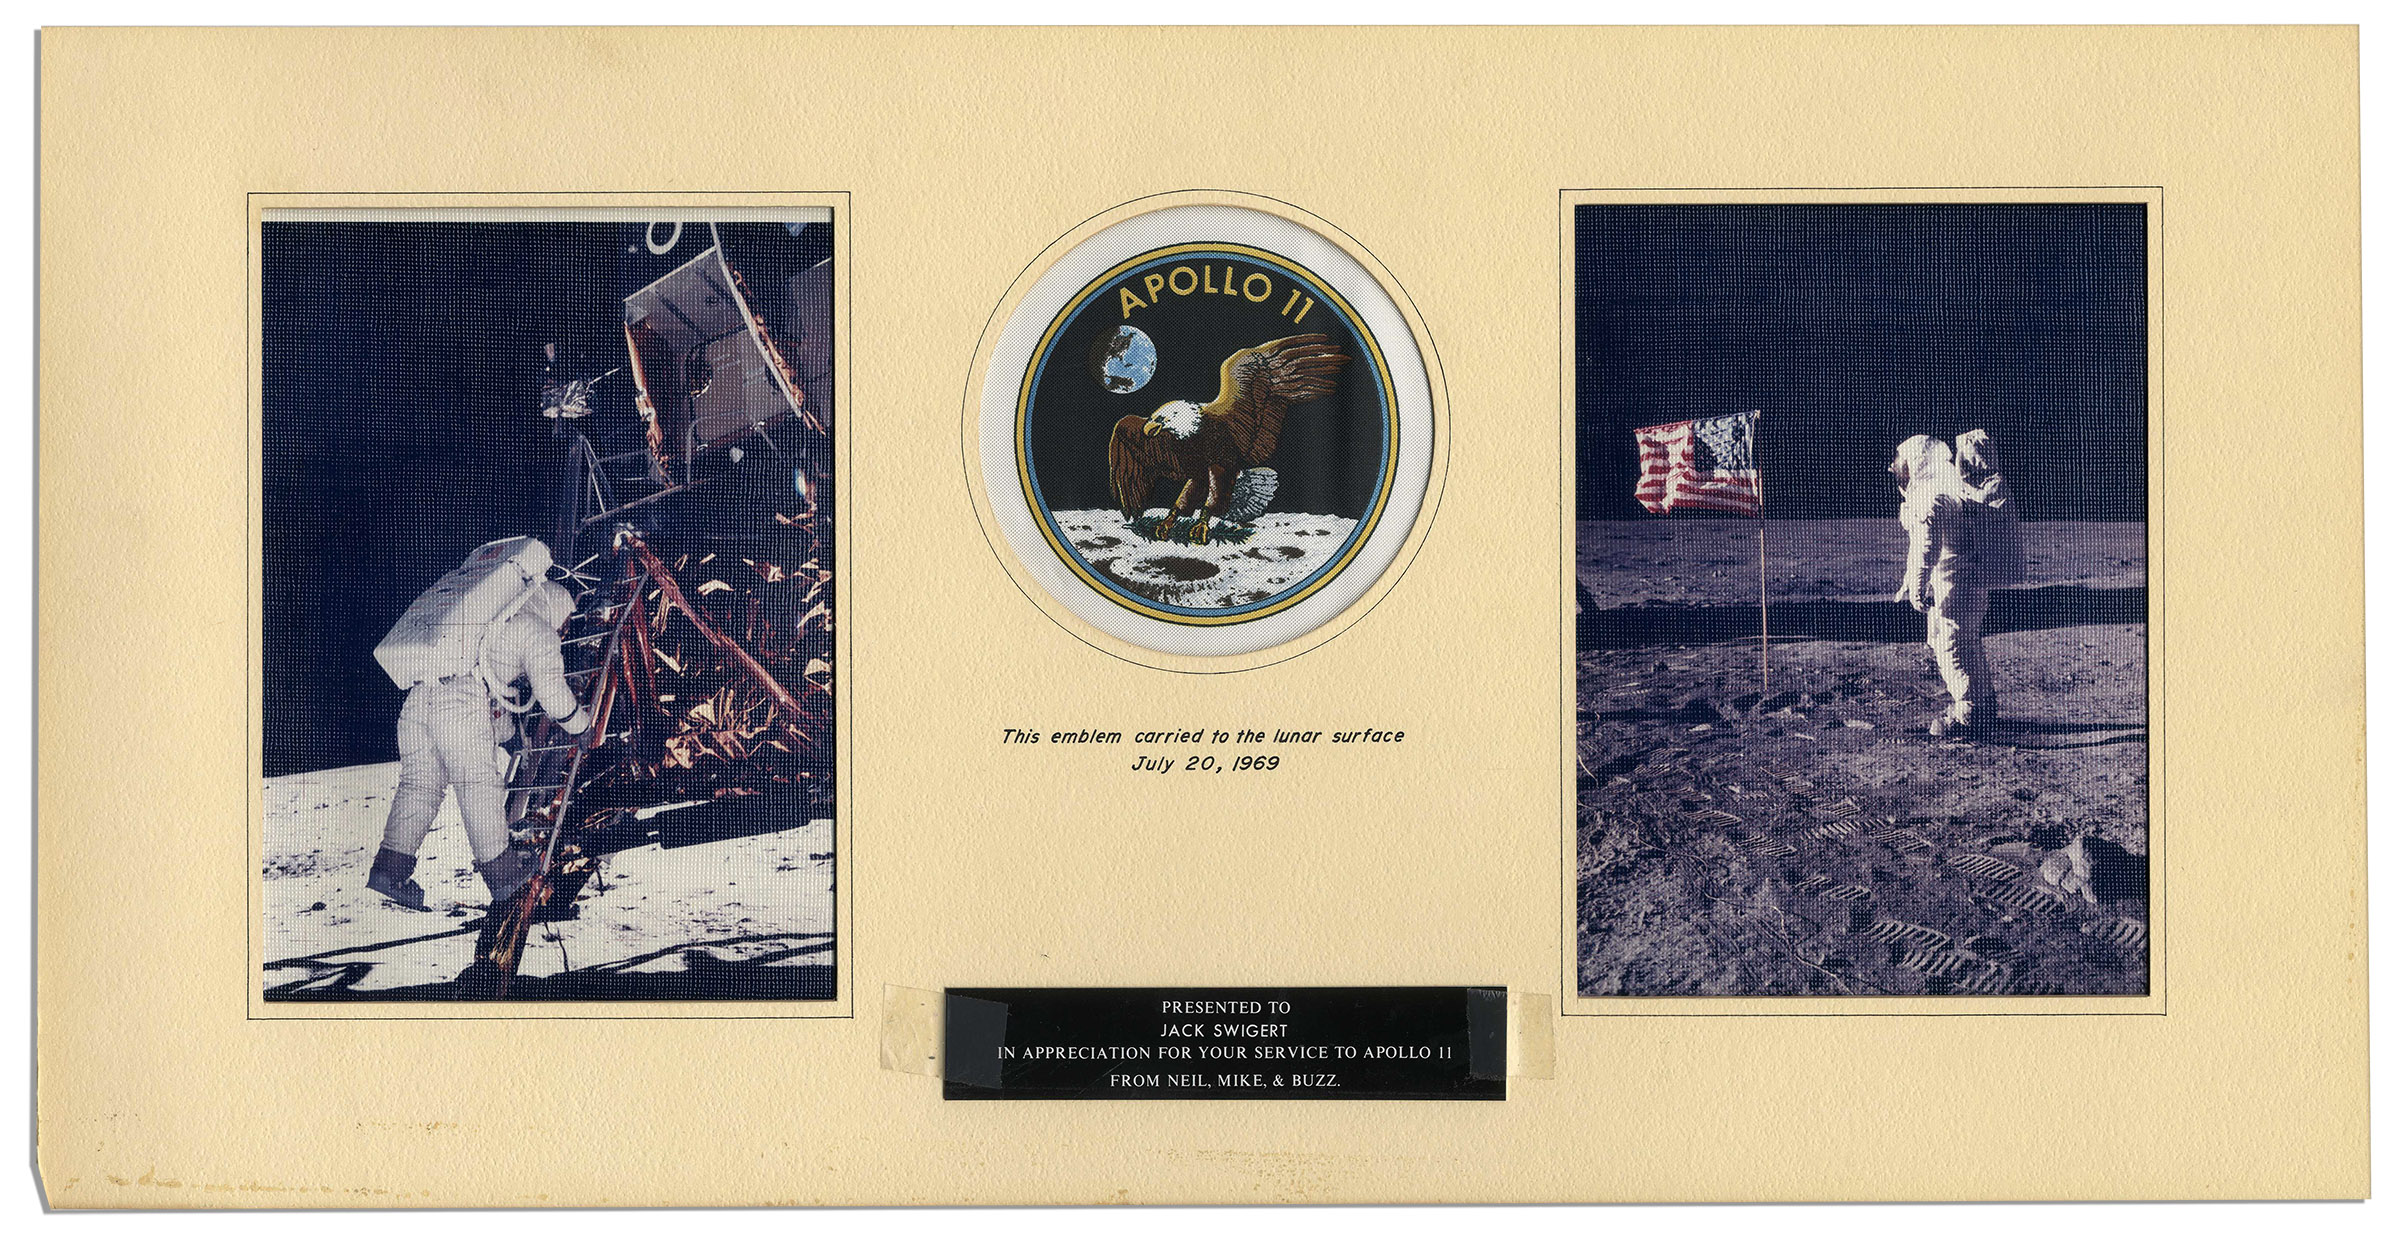 Apollo 11 Flown